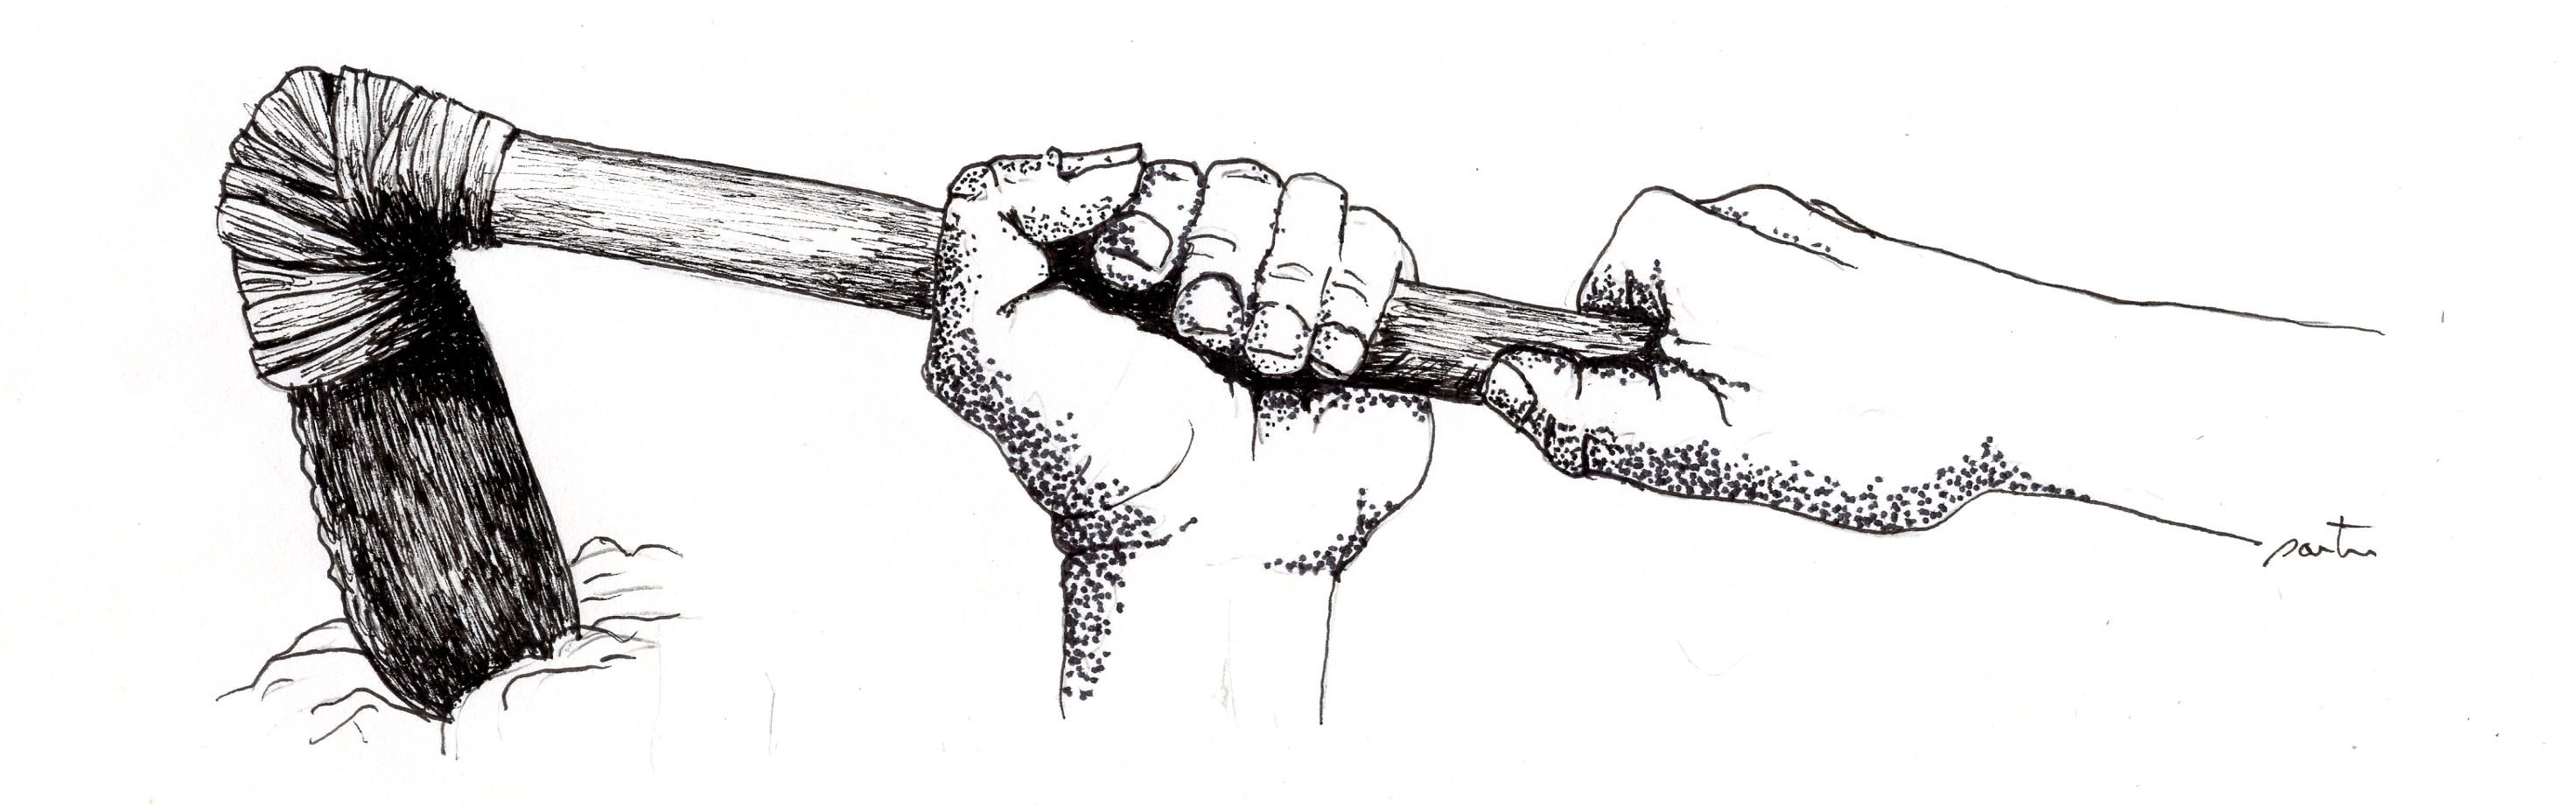 A hoe made from stone. Drawing by Larry Porter.